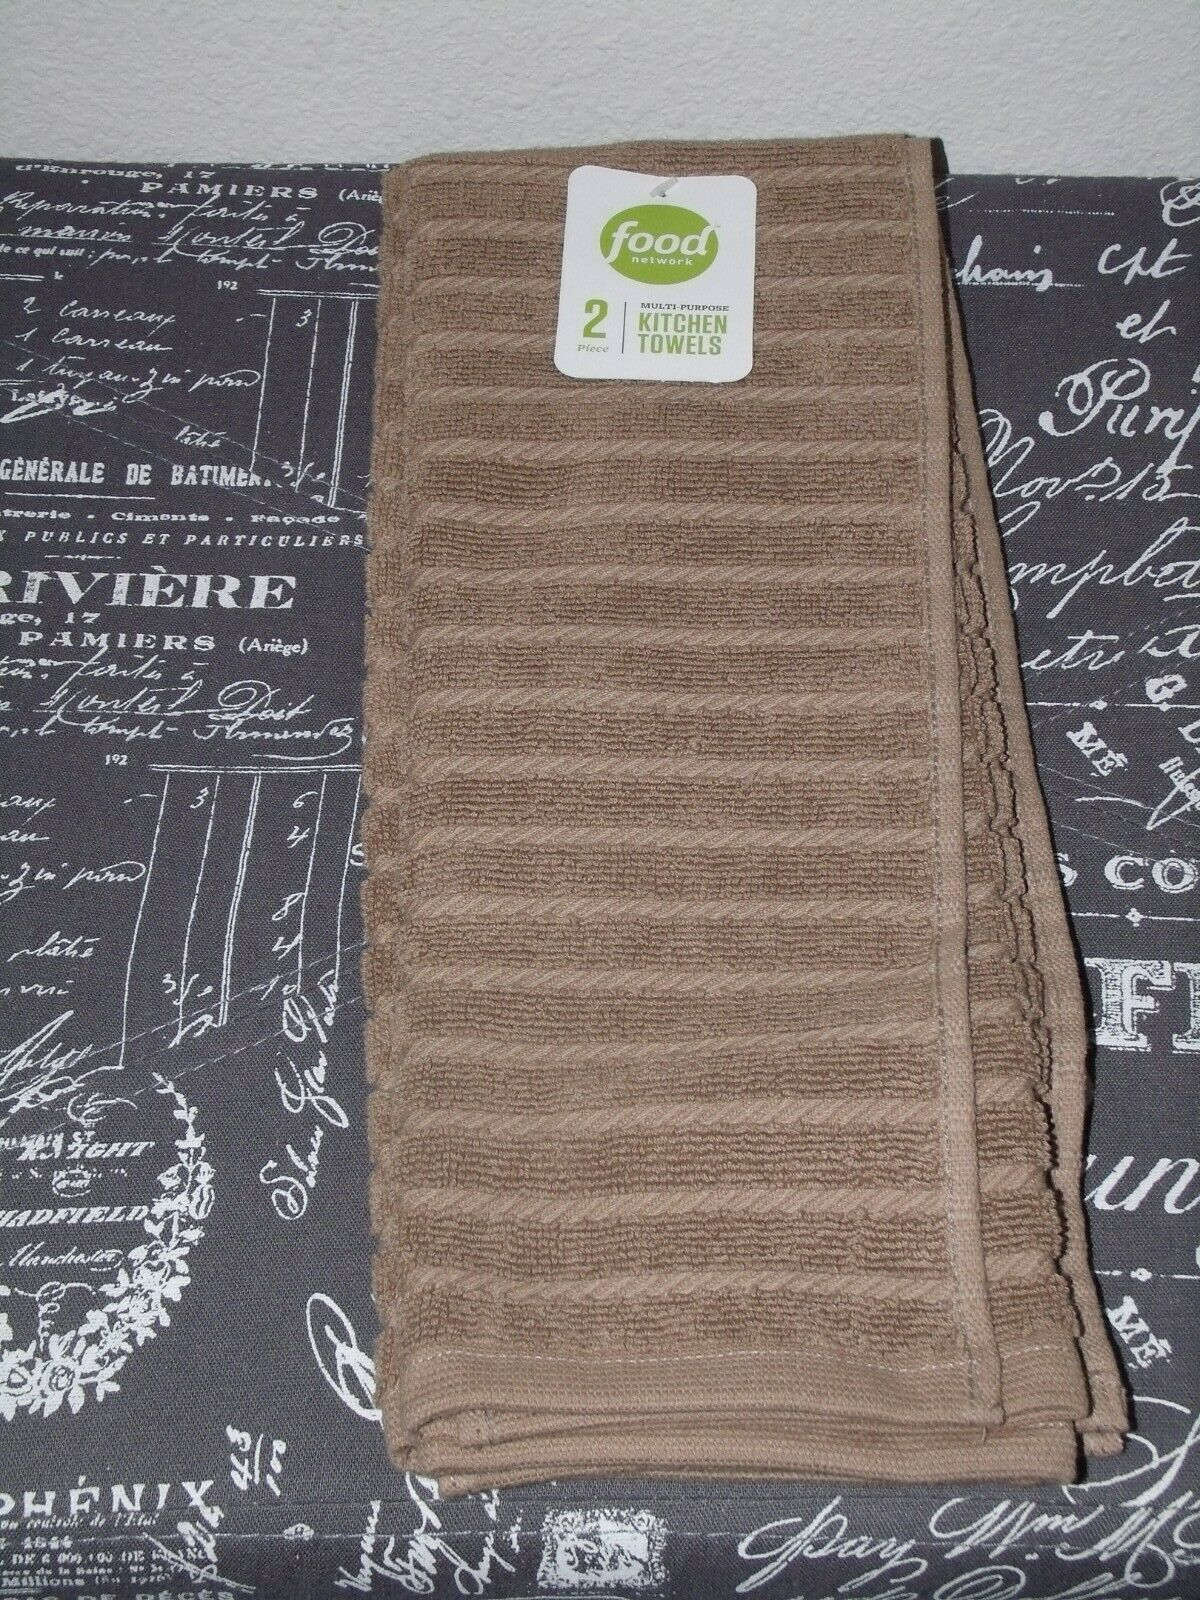 Food Network 2 Pk Sculpted Antimicrobial Kitchen Towels Khaki For Sale Online Ebay